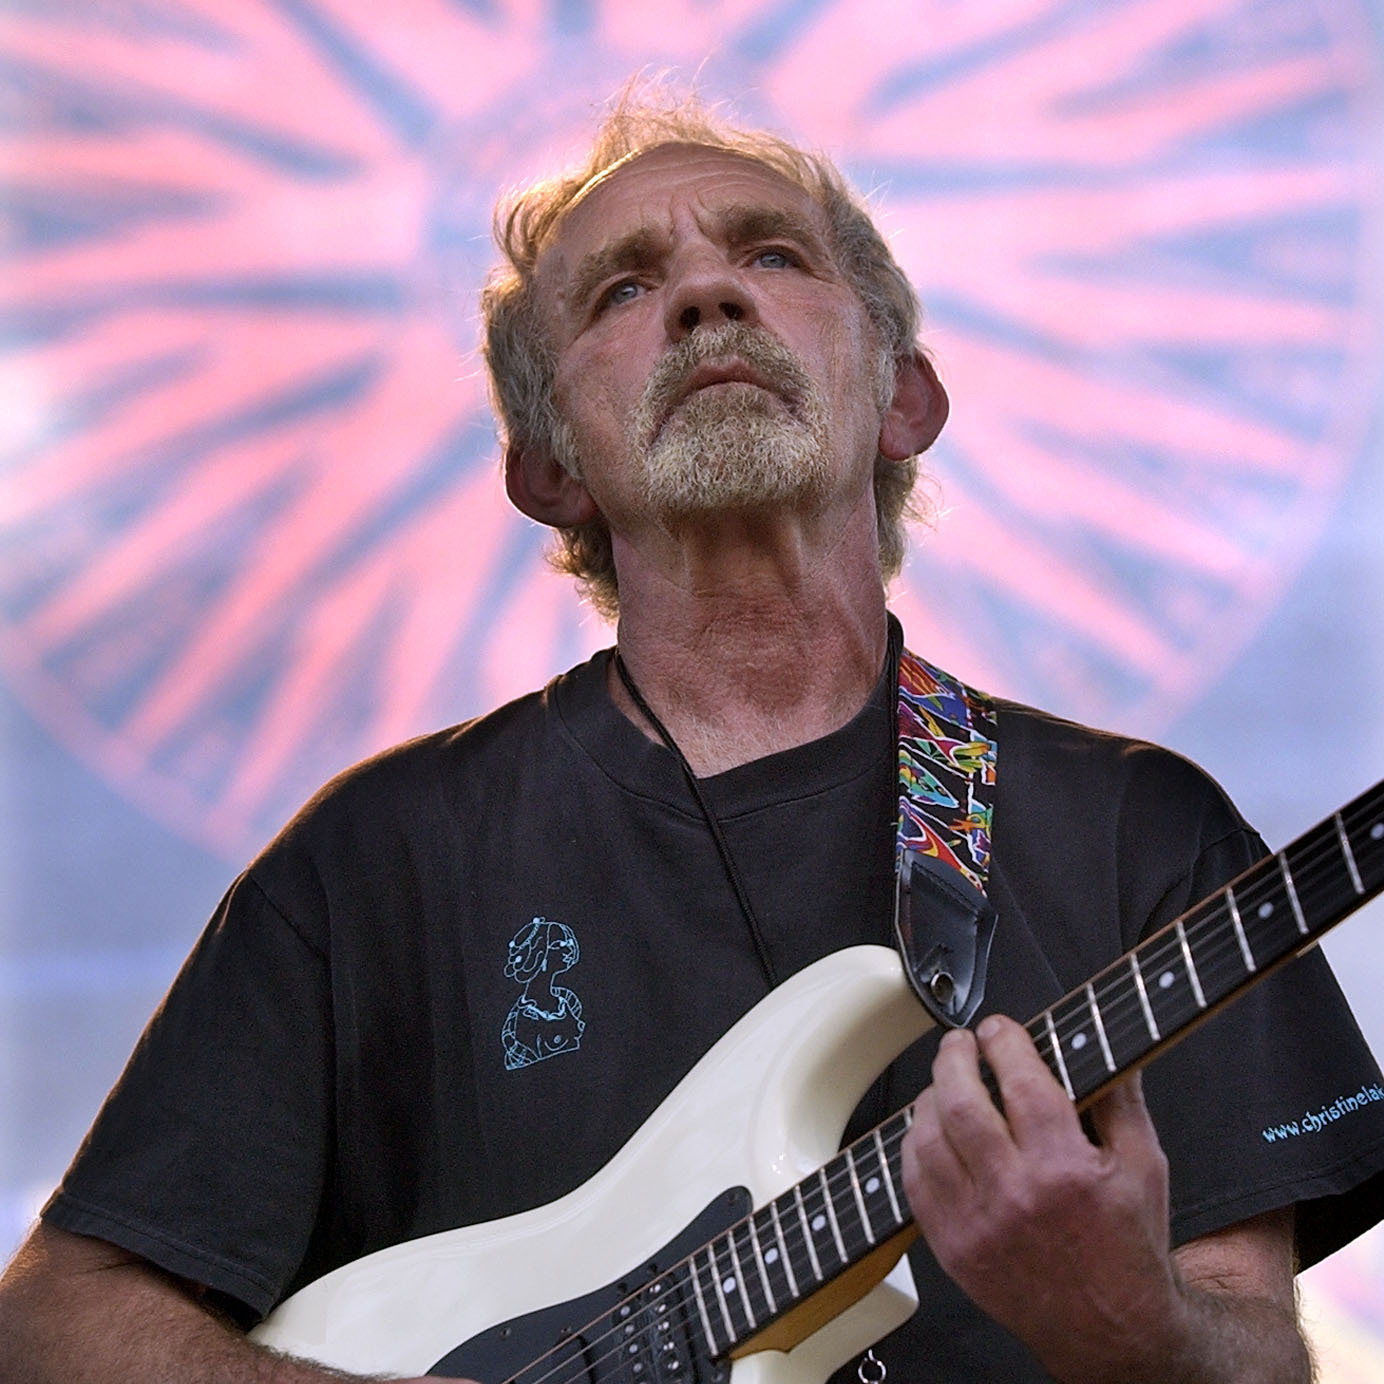 Singer songwriter J.J. Cale plays on stage during the Eric Clapton Crossroads Guitar Festival, in June 2004, in Dallas.